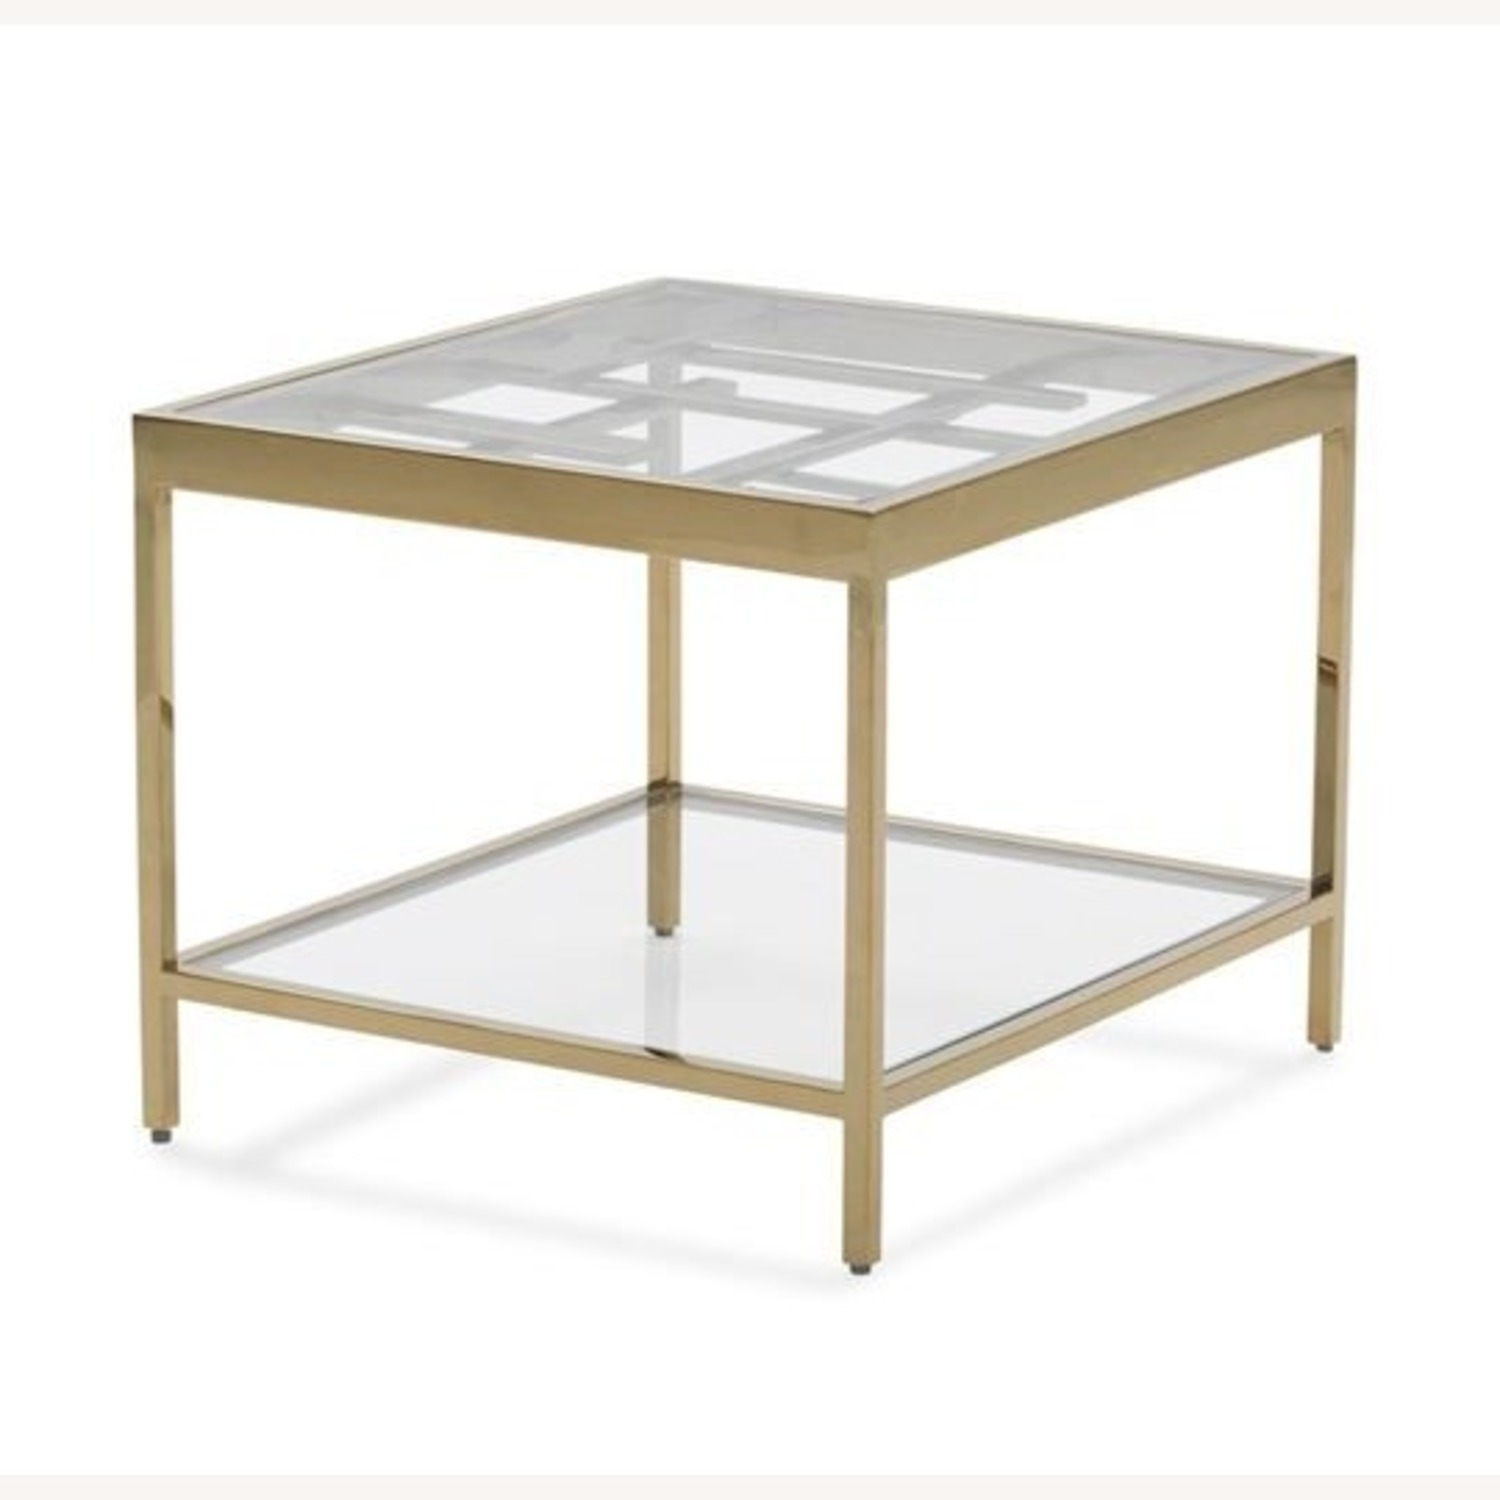 Mitchell Gold + Bob Williams Jules Side Tables - image-2